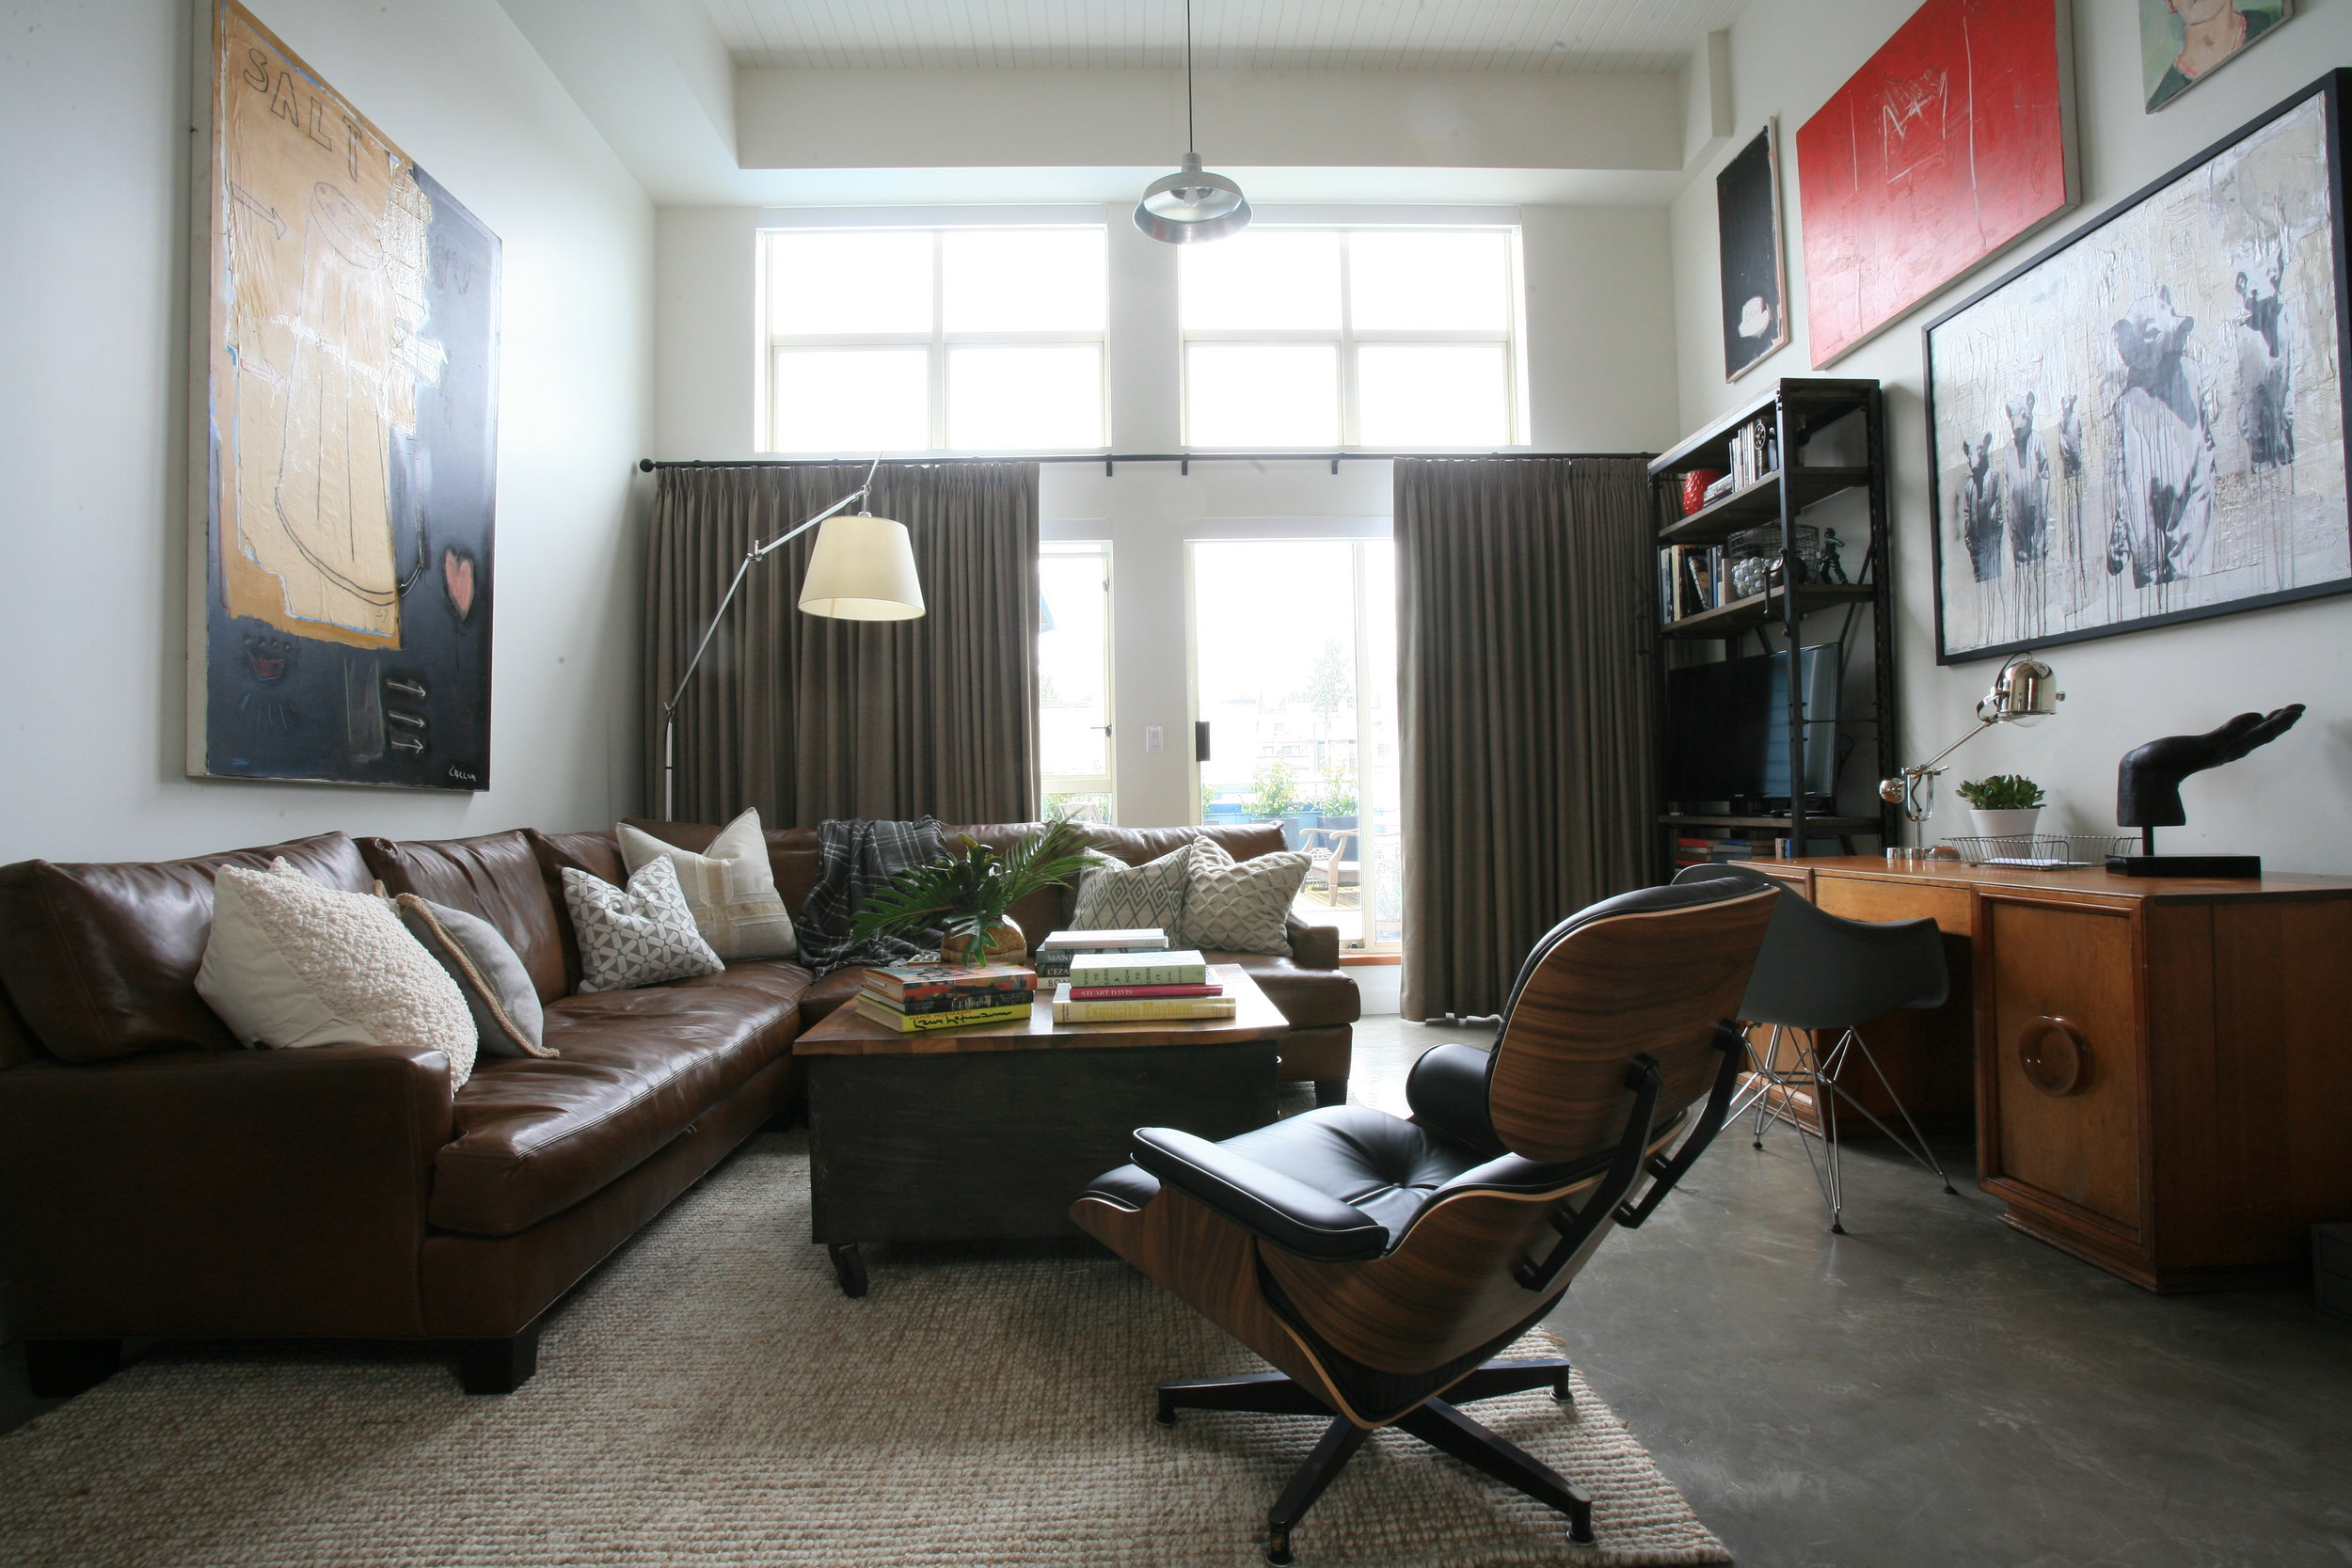 The living room of a loft, with masculine leather furniture and a home office, complete with various eclectic paintings on the wall.